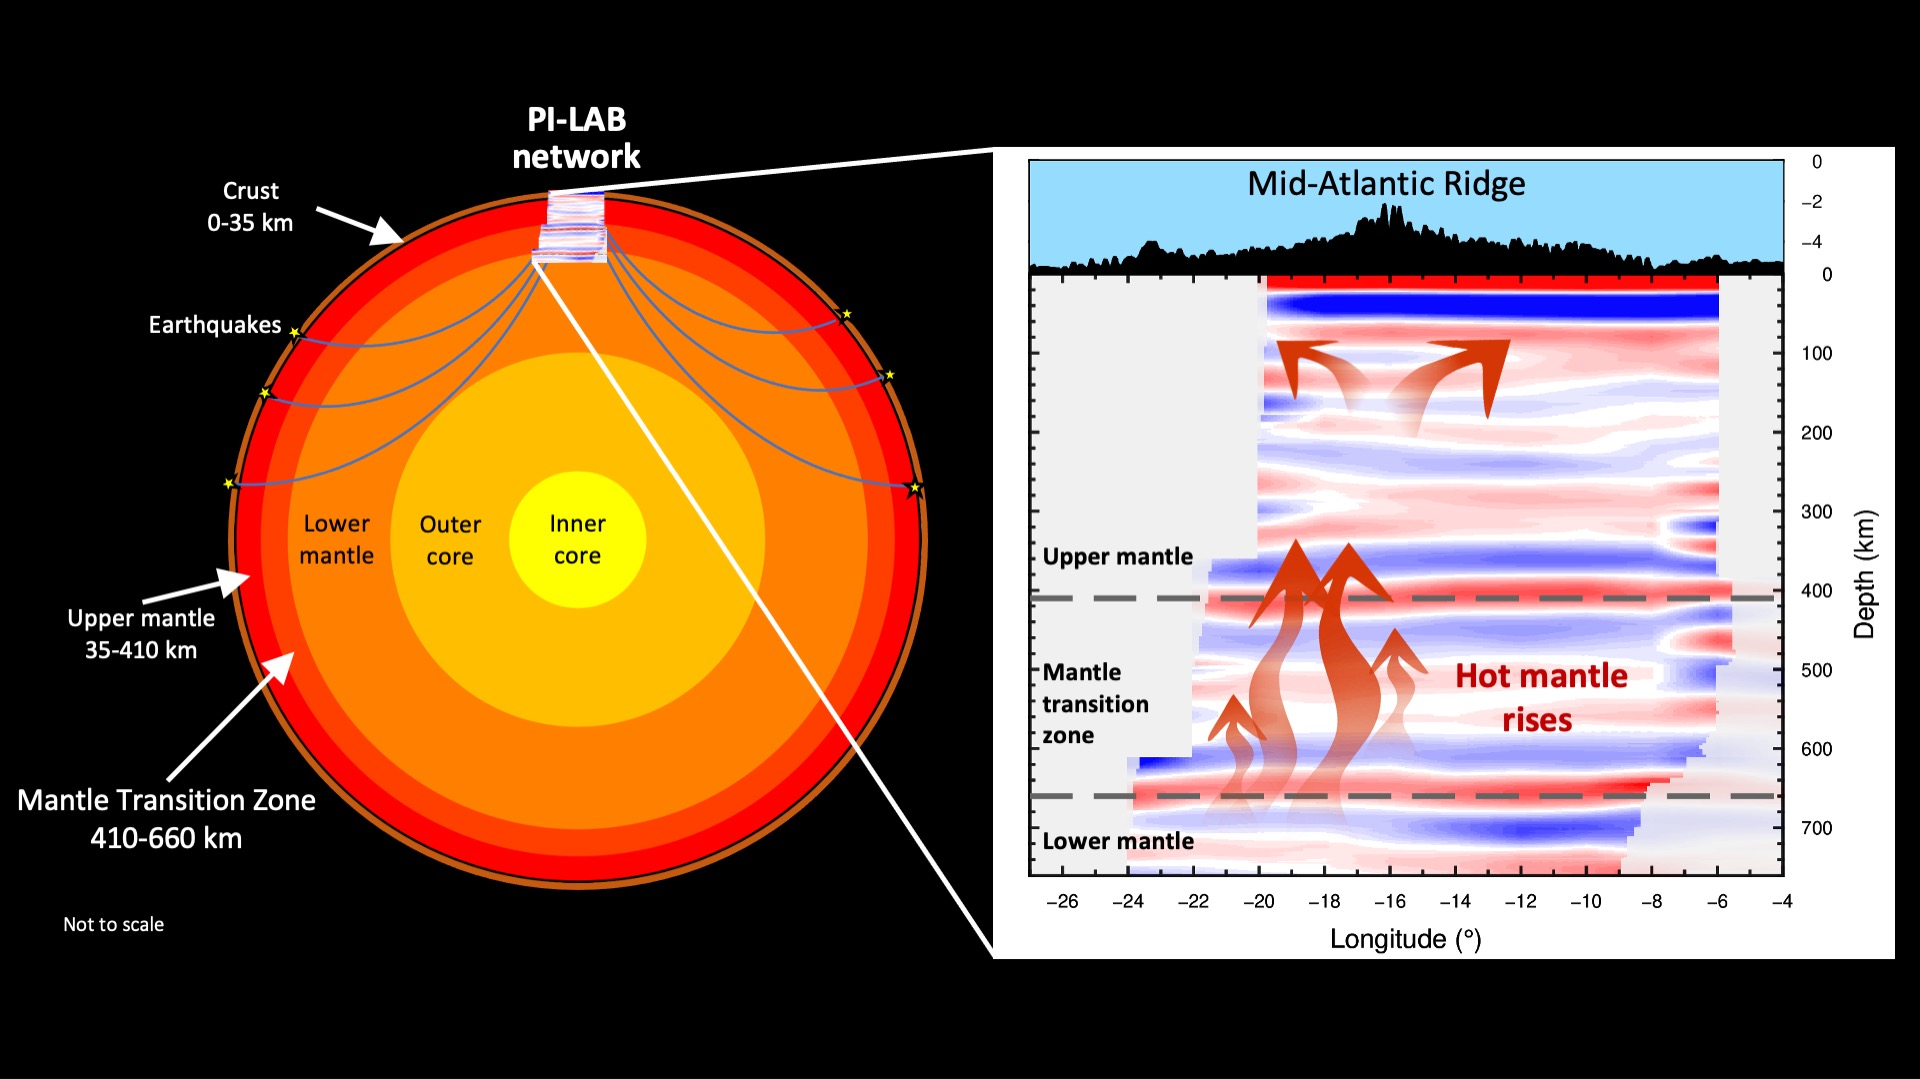 Seismic waves from earthquakes travel deep inside the Earth and are recorded on the seismometers. Analysis of that data allowed researchers to image the inside of our planet and find that the mantle transition zone was thinner than average. That suggests it's hotter than average likely prompting material to move from the lower mantle to the upper mantle and pushing on the tectonic plates above.